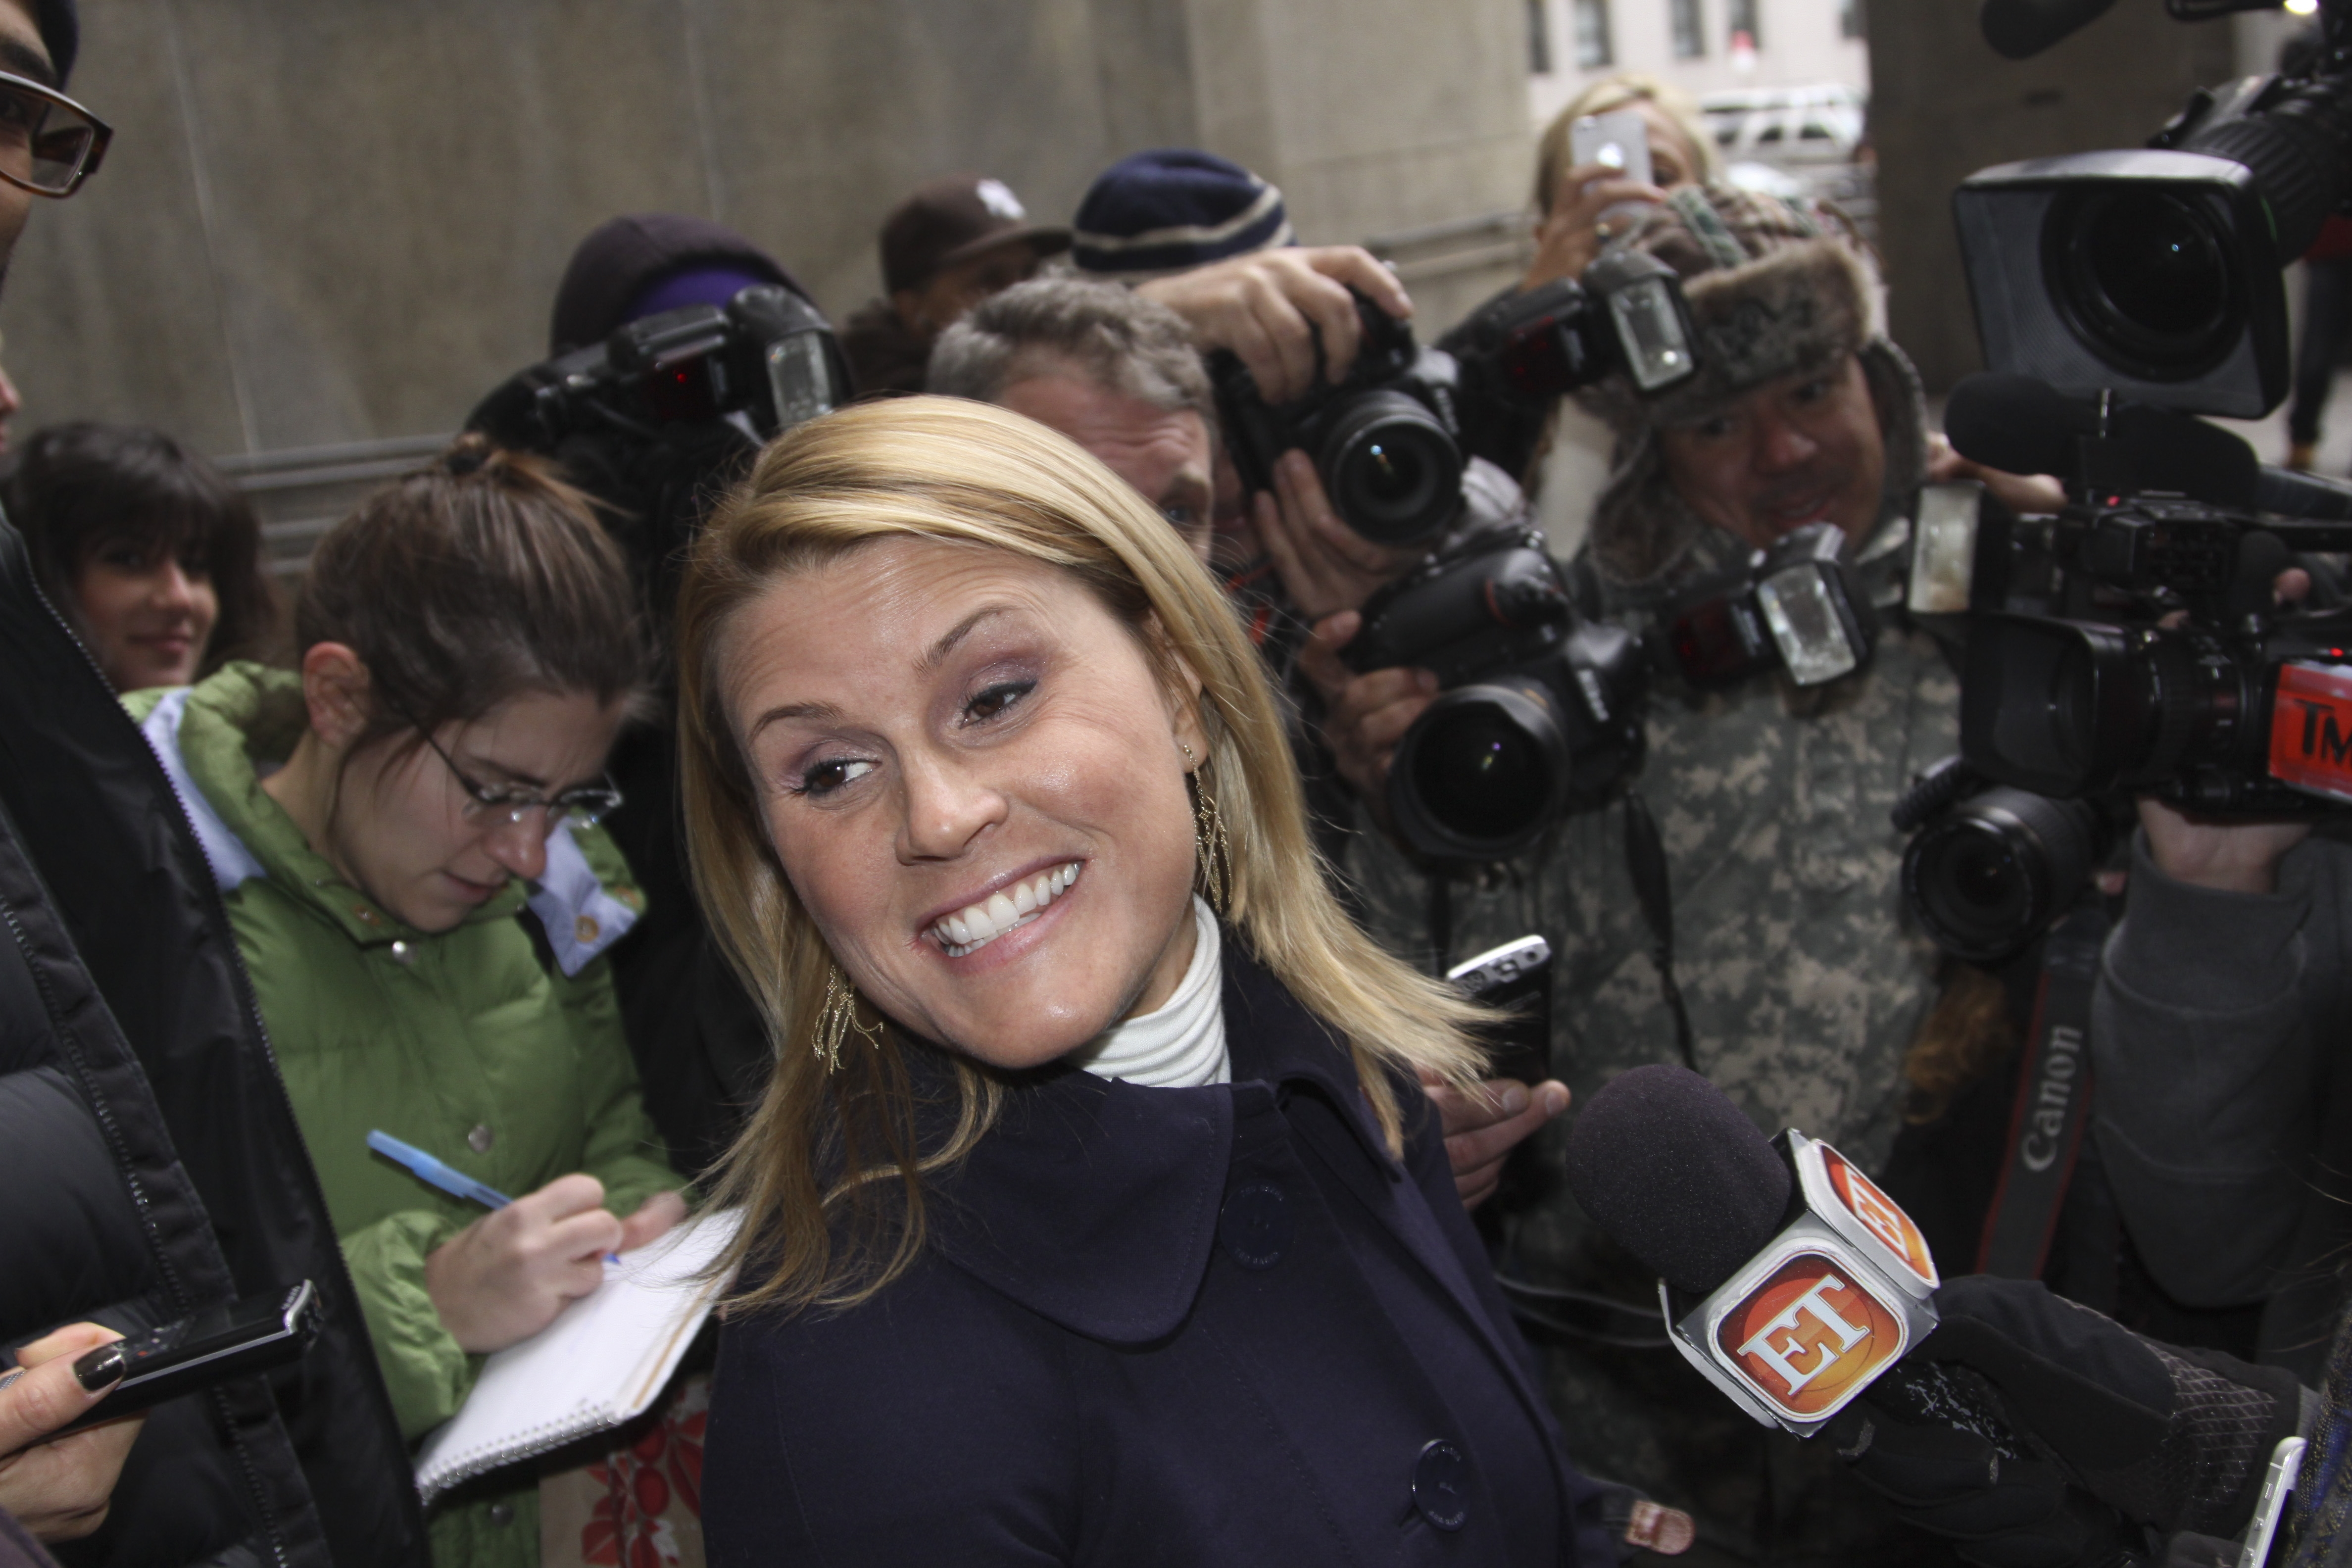 Genevieve Sabourin, charged with stalking and harassing Alec Baldwin, smiles outside court Tuesday in New York.